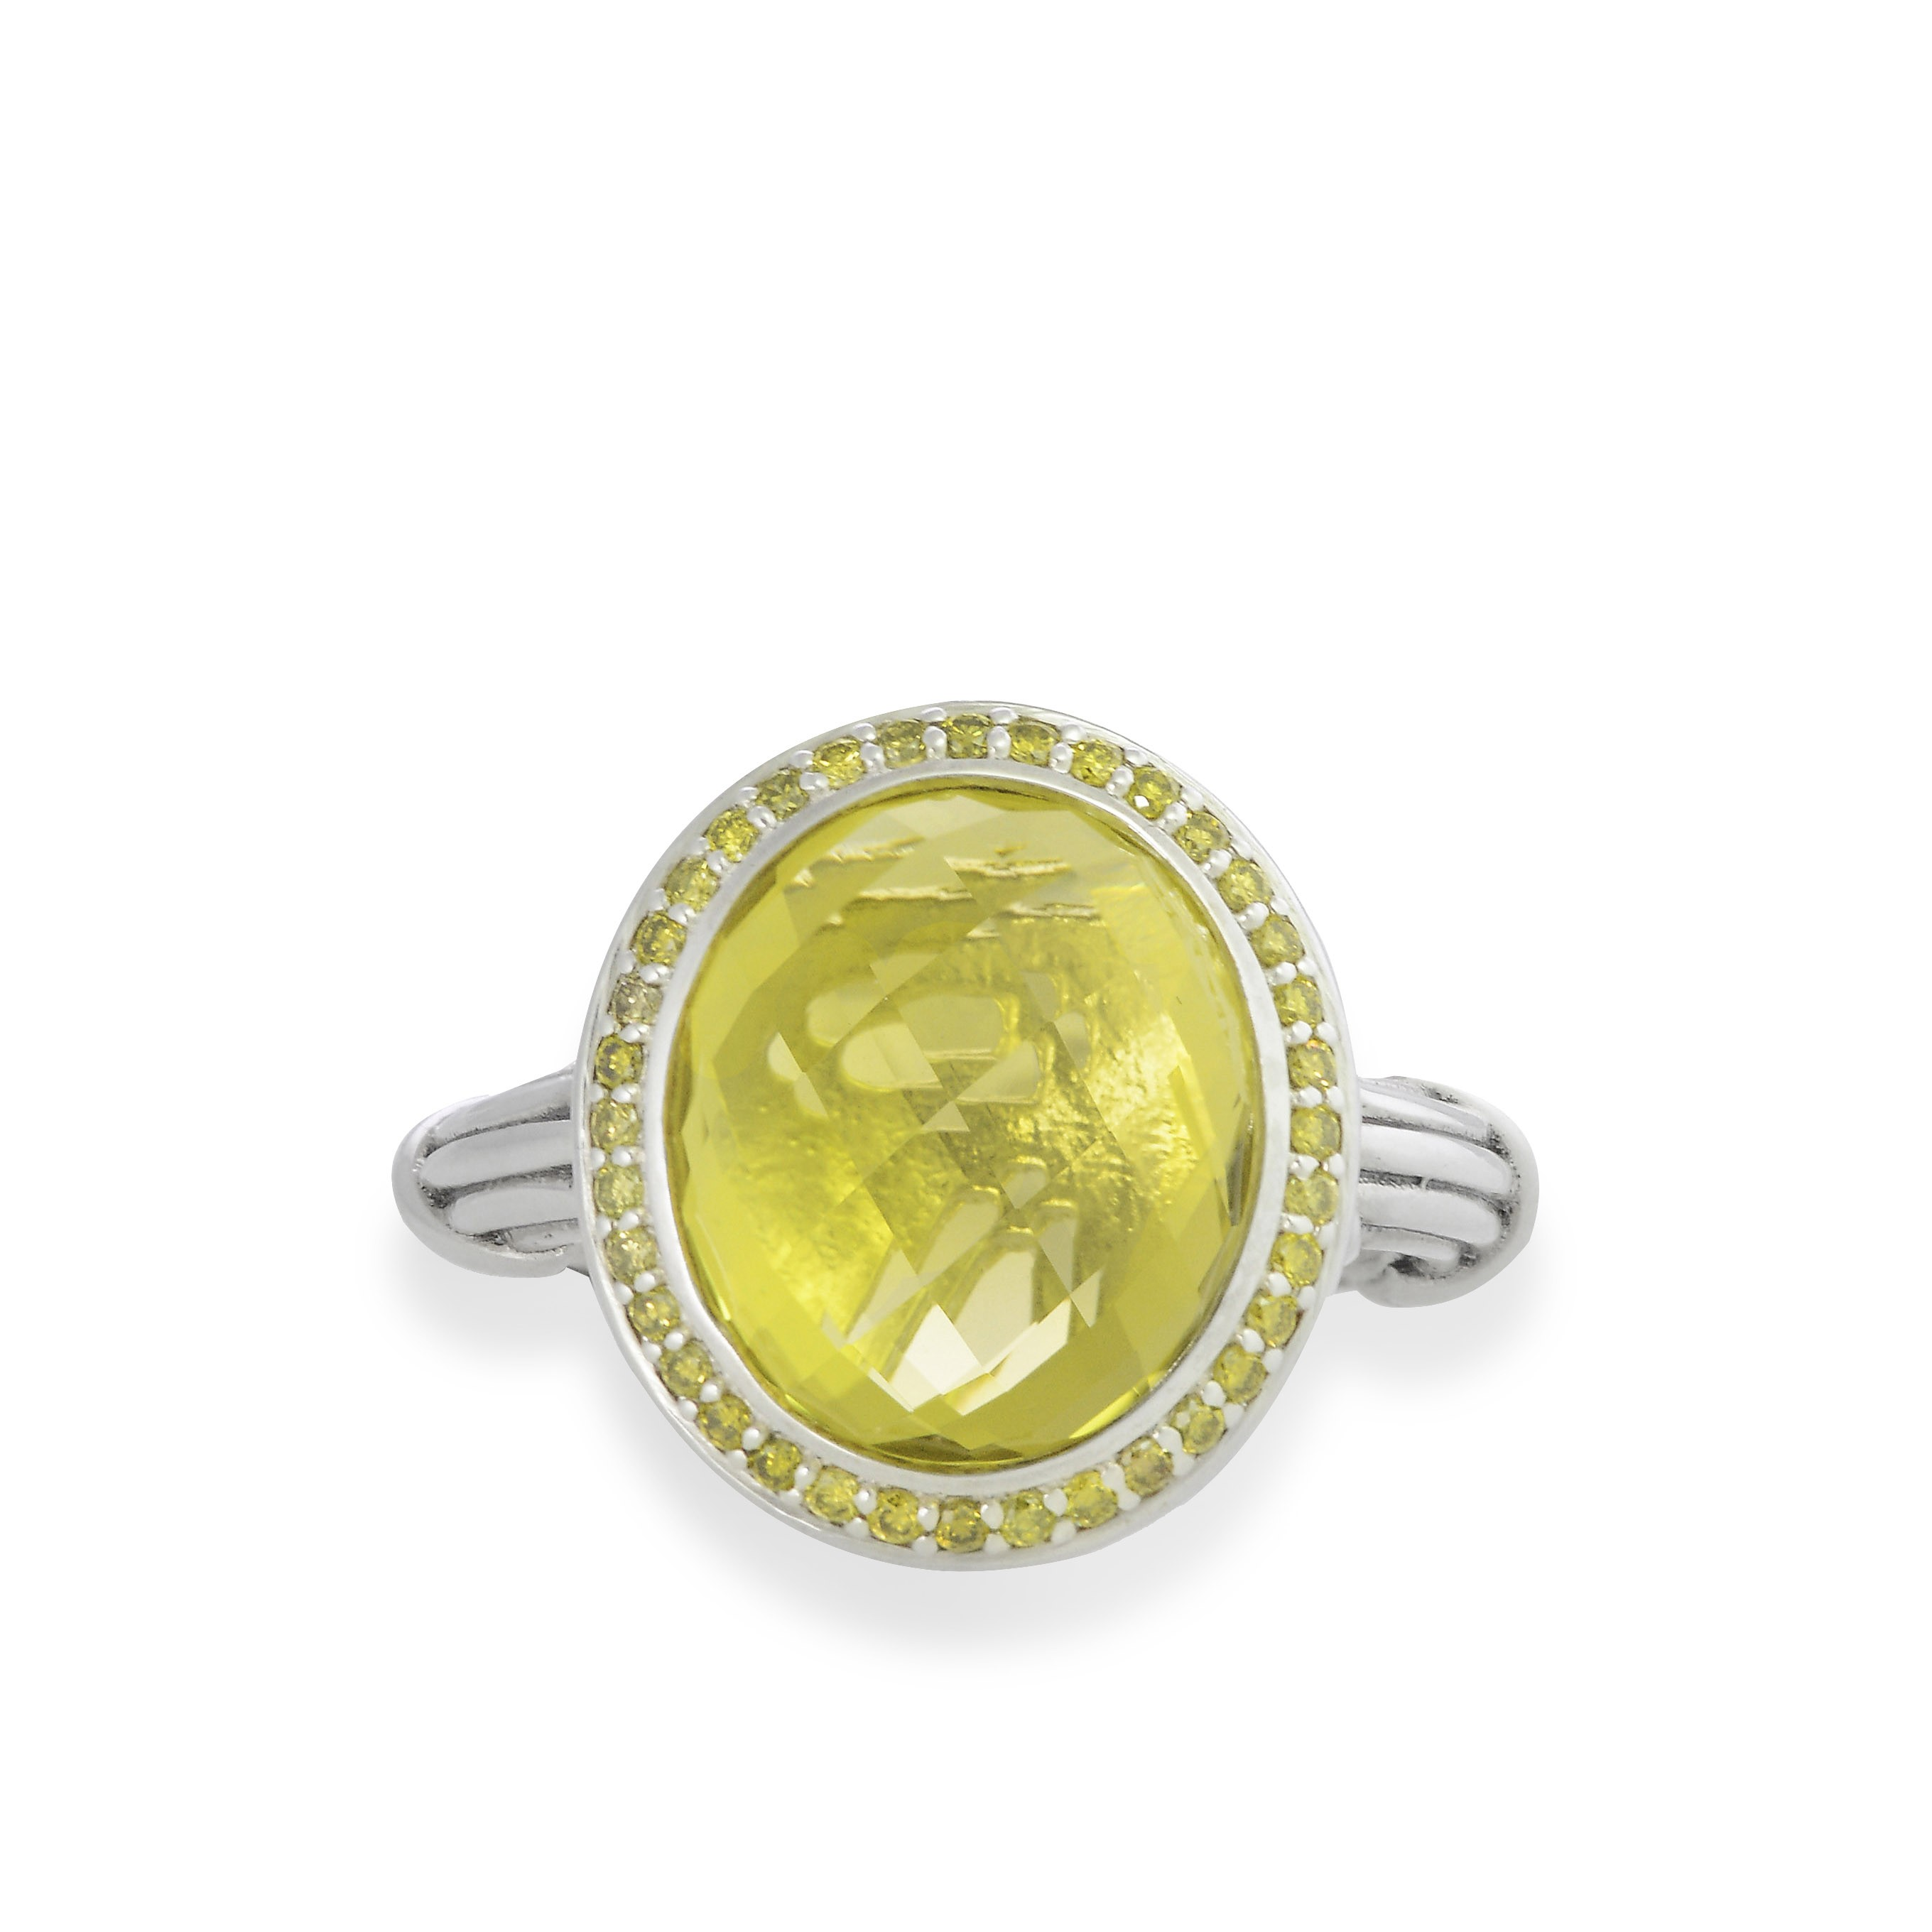 Fantasies Lemon Citrine Halo Ring in sterling silver with yellow diamonds